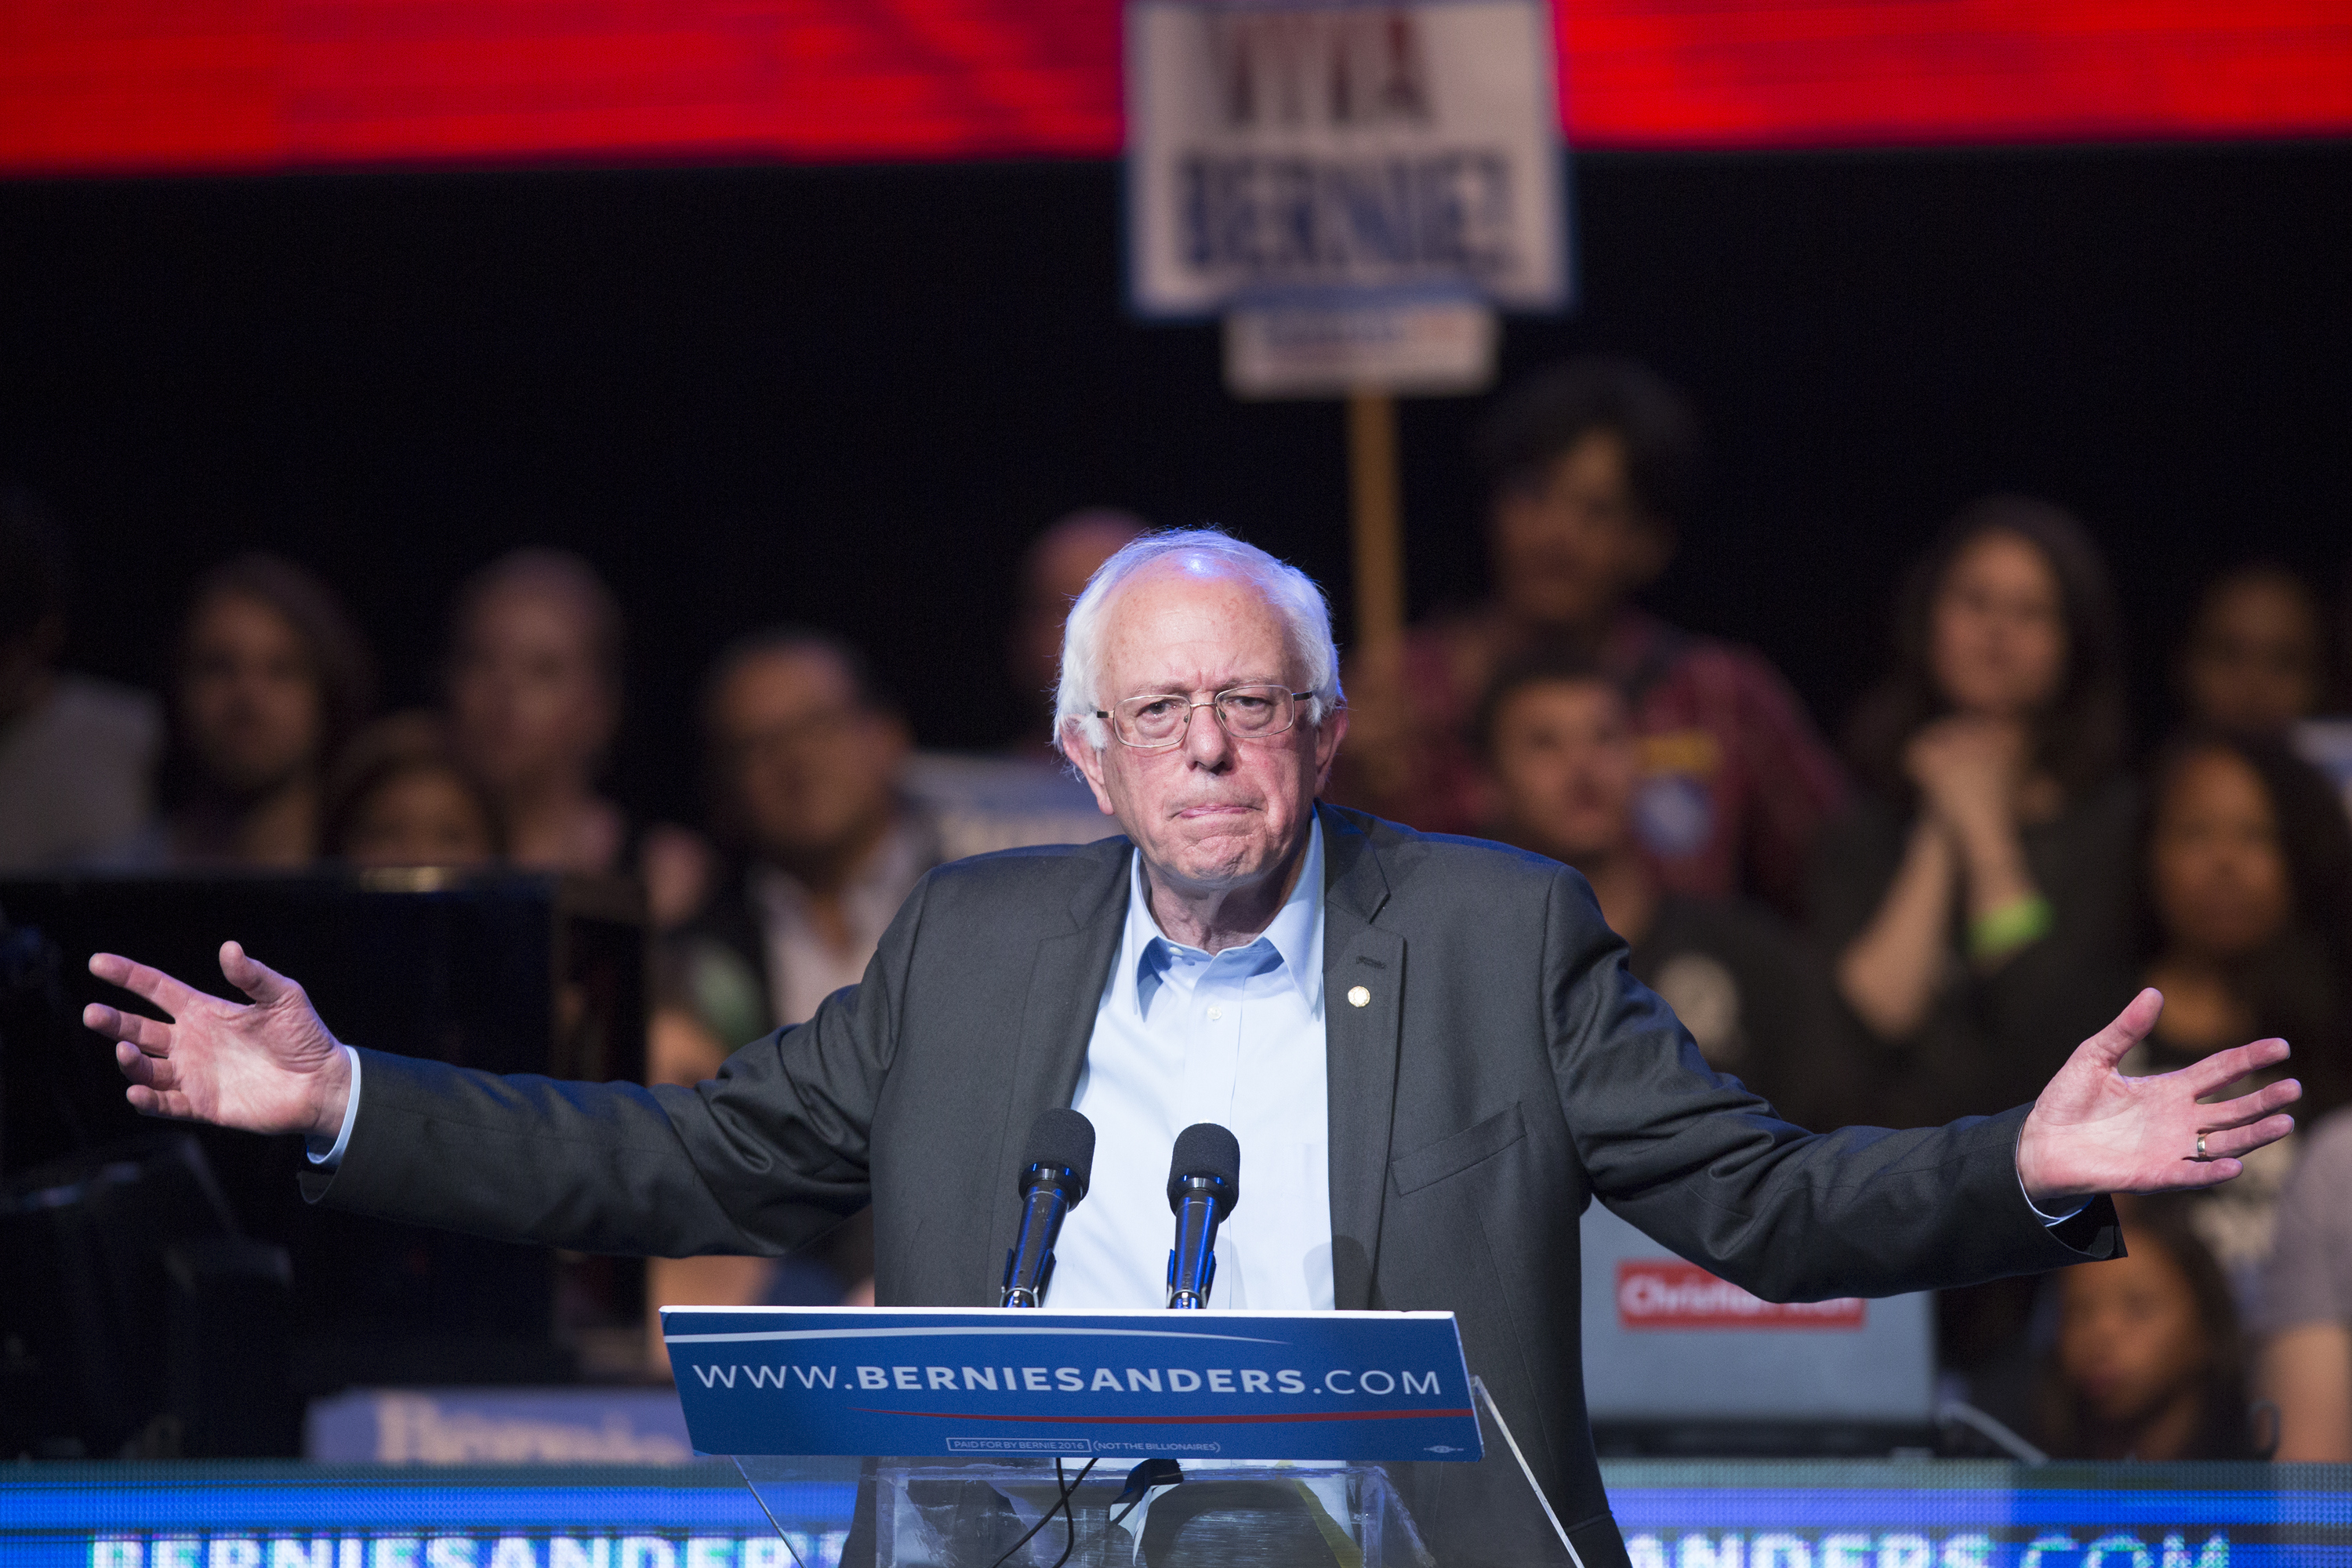 Bernie Sanders Hosts LA Fundraising Reception